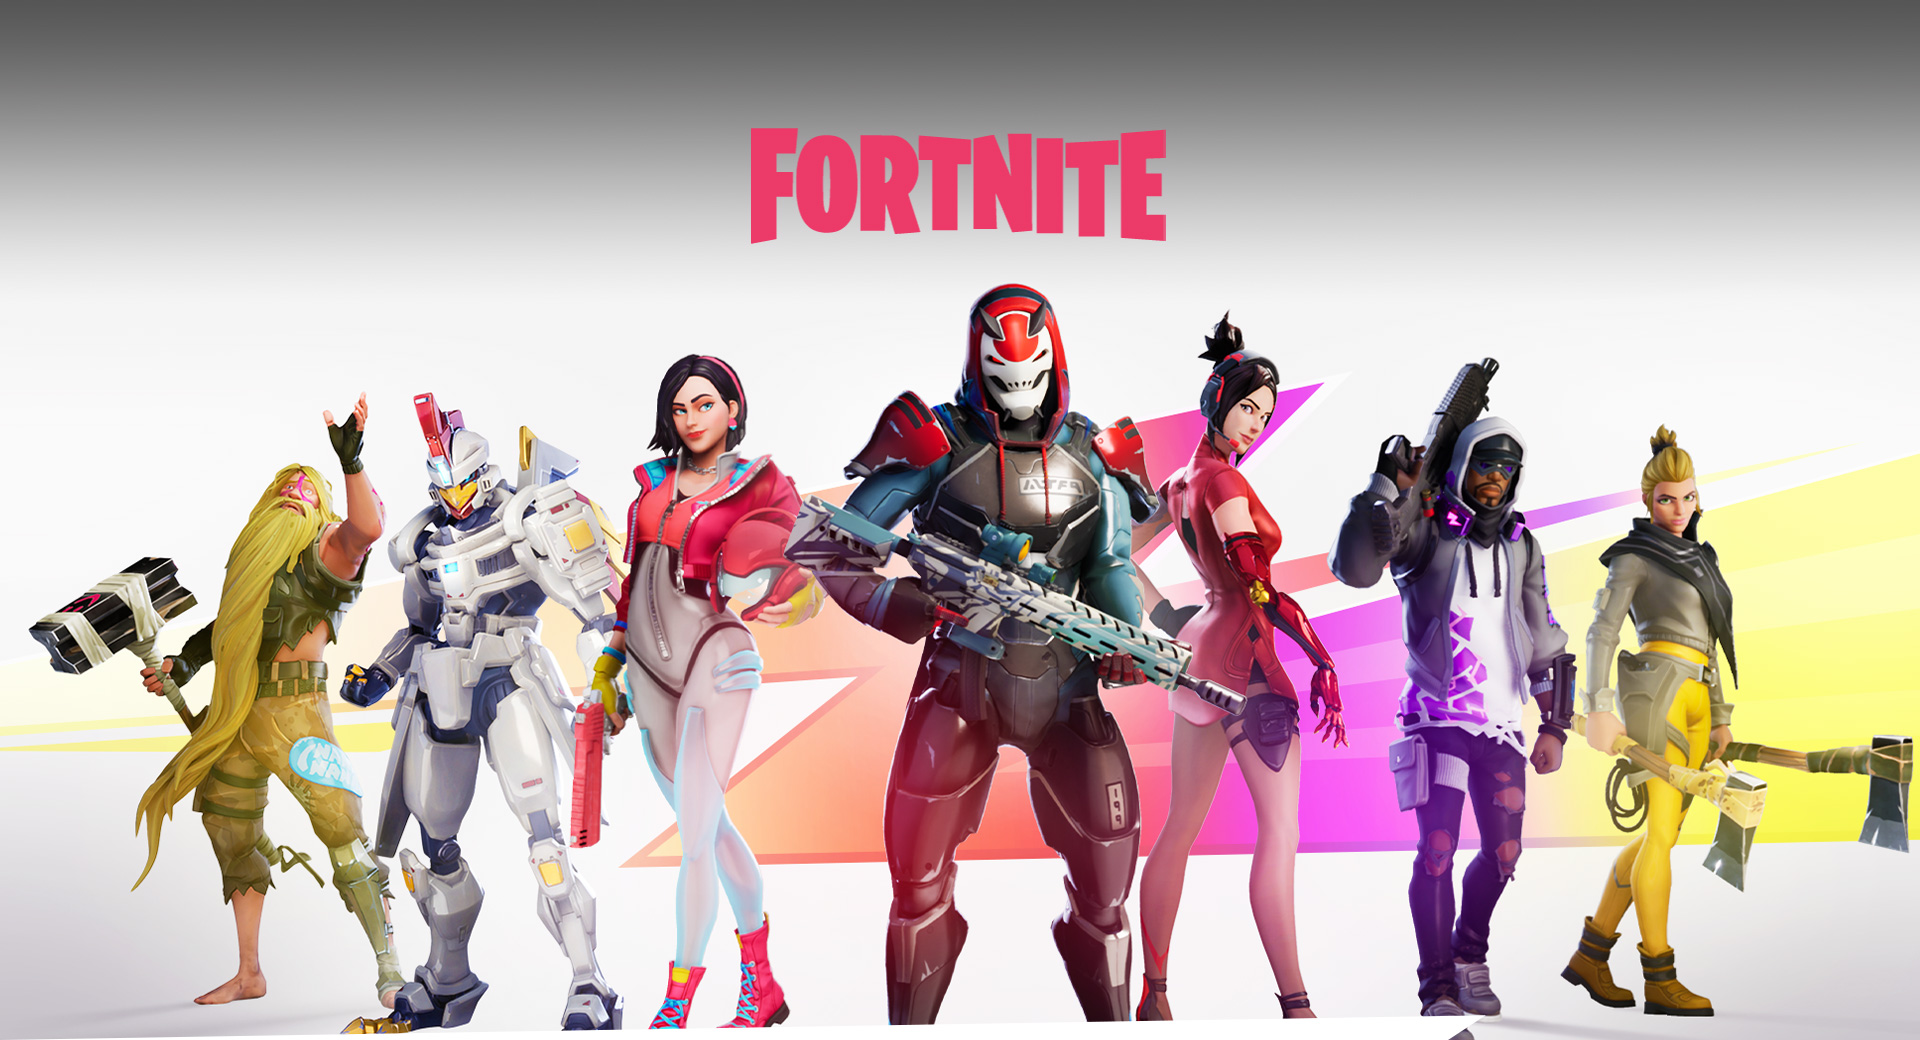 xbox Fortnte guide: 5 Fortnite characters standing in front of the Fortnite logo